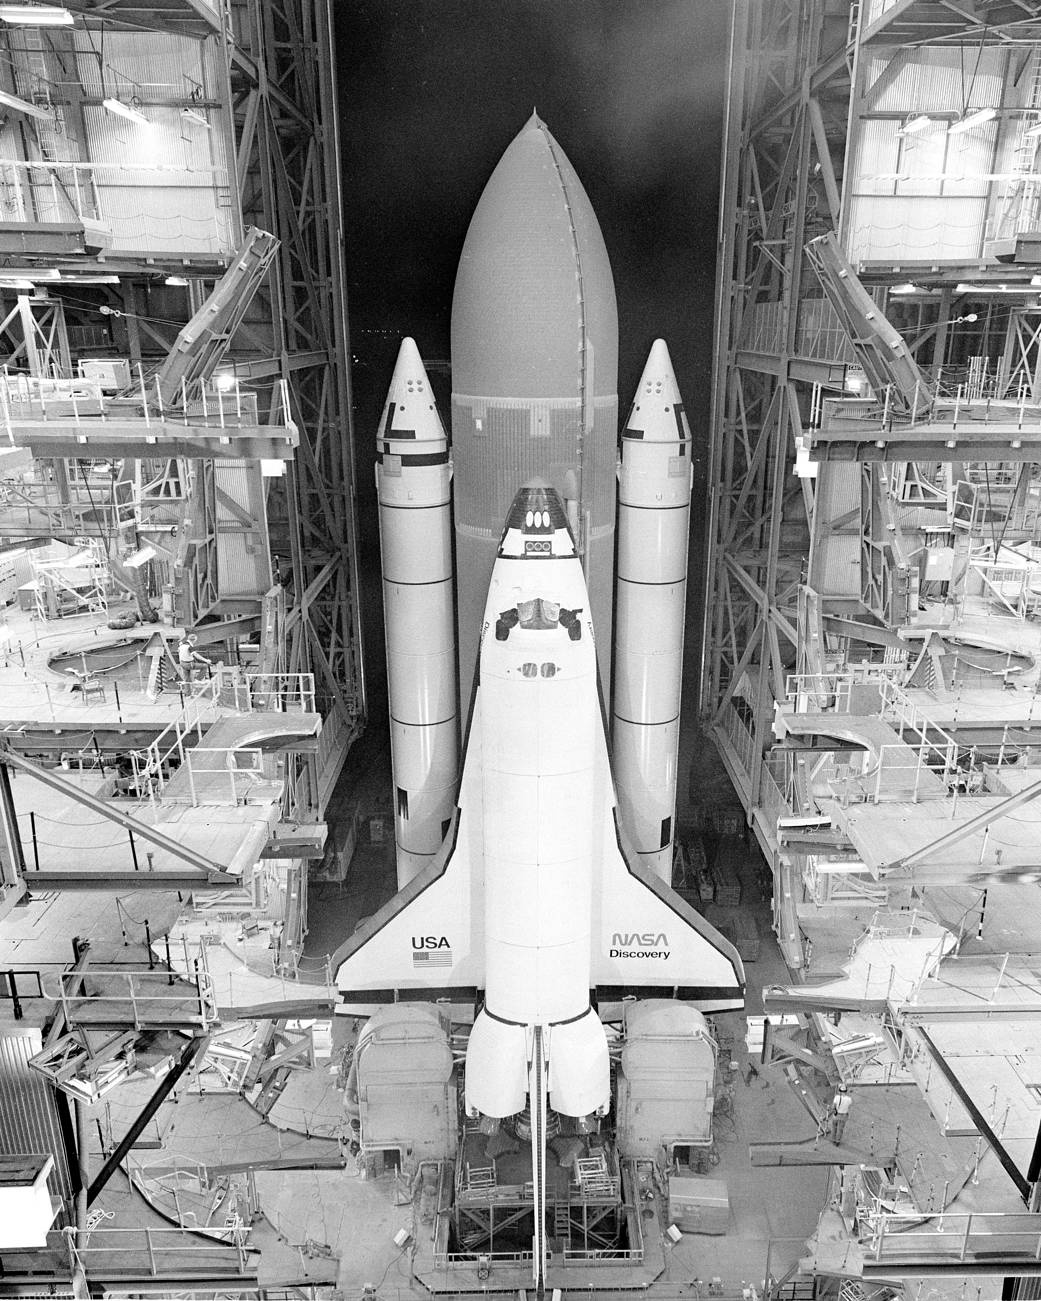 This week in 1984, space shuttle Discovery and STS-41D launched from Kennedy Space Center.